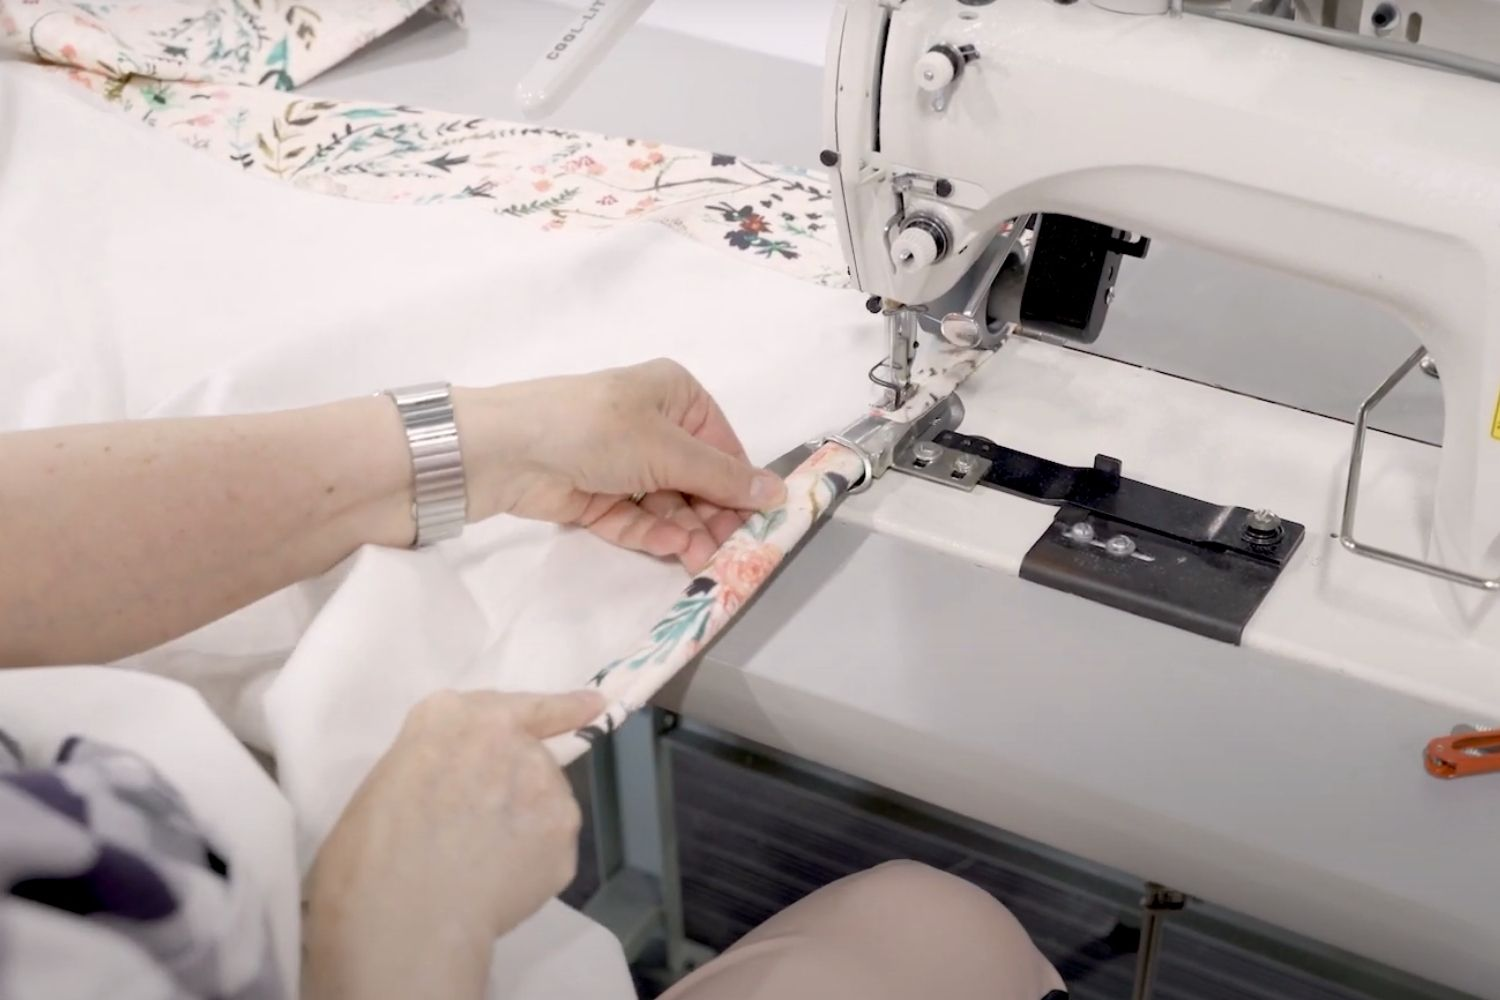 Sewing curtains with a sewing machine